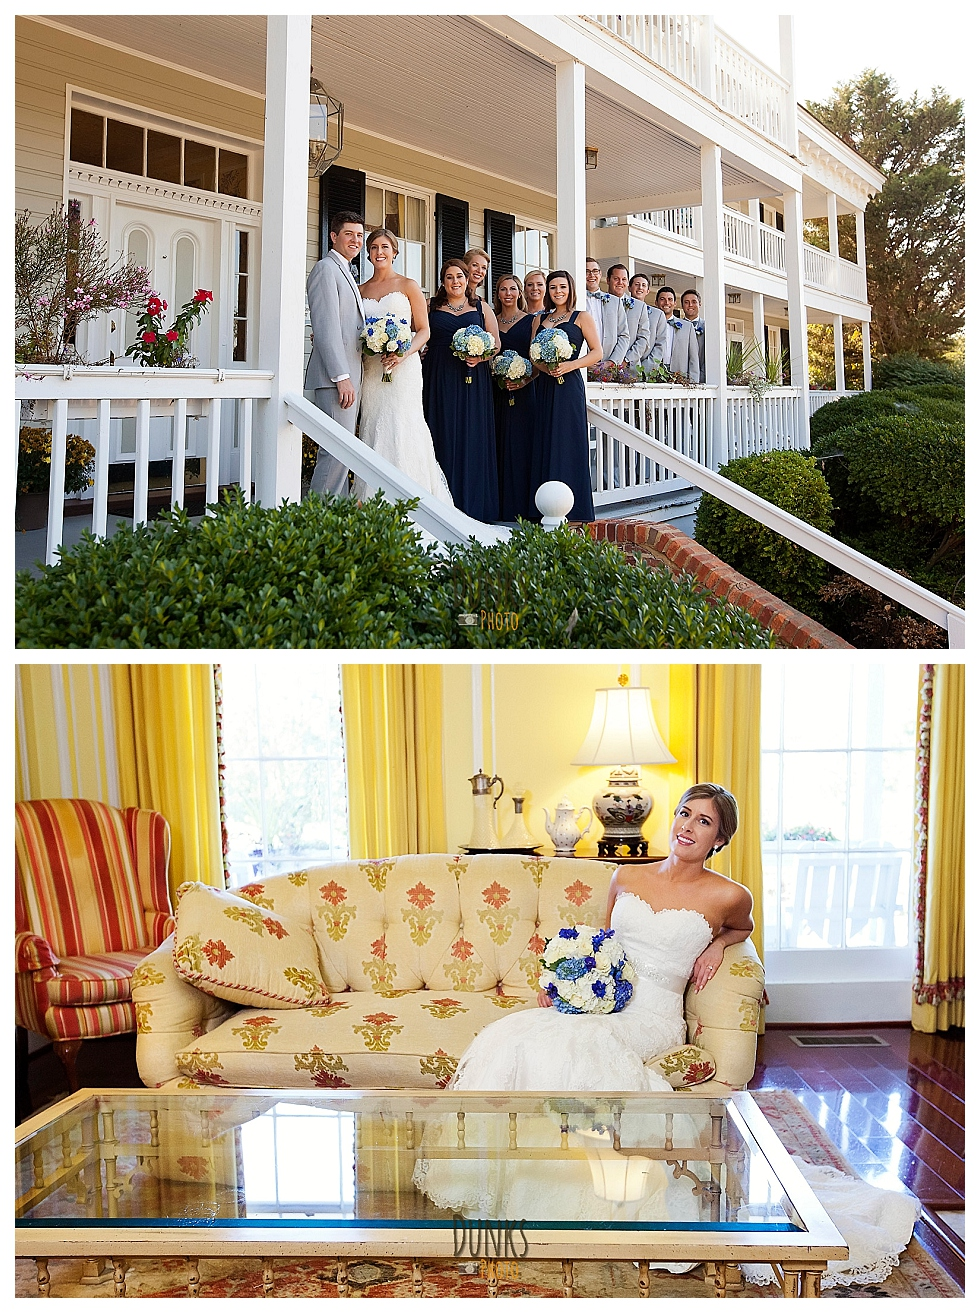 kent manor inn wedding photos (2)